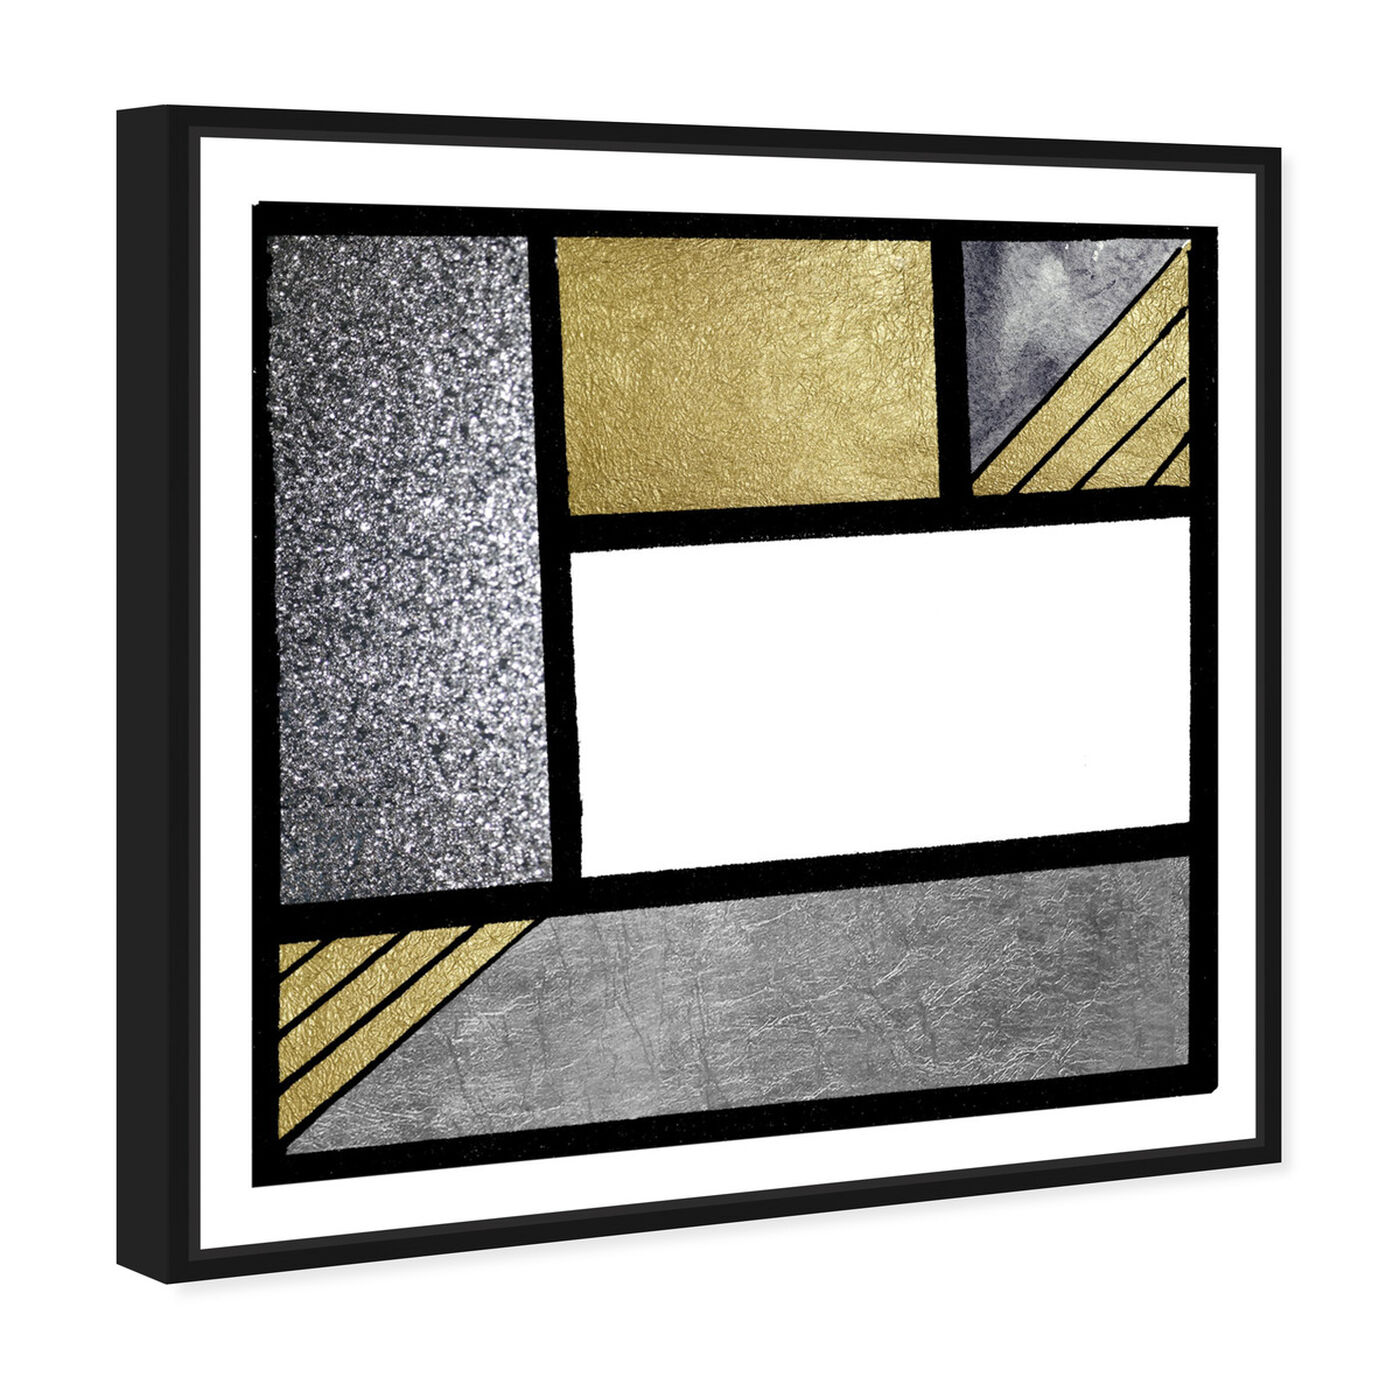 Angled view of Gold Feeling featuring abstract and geometric art.